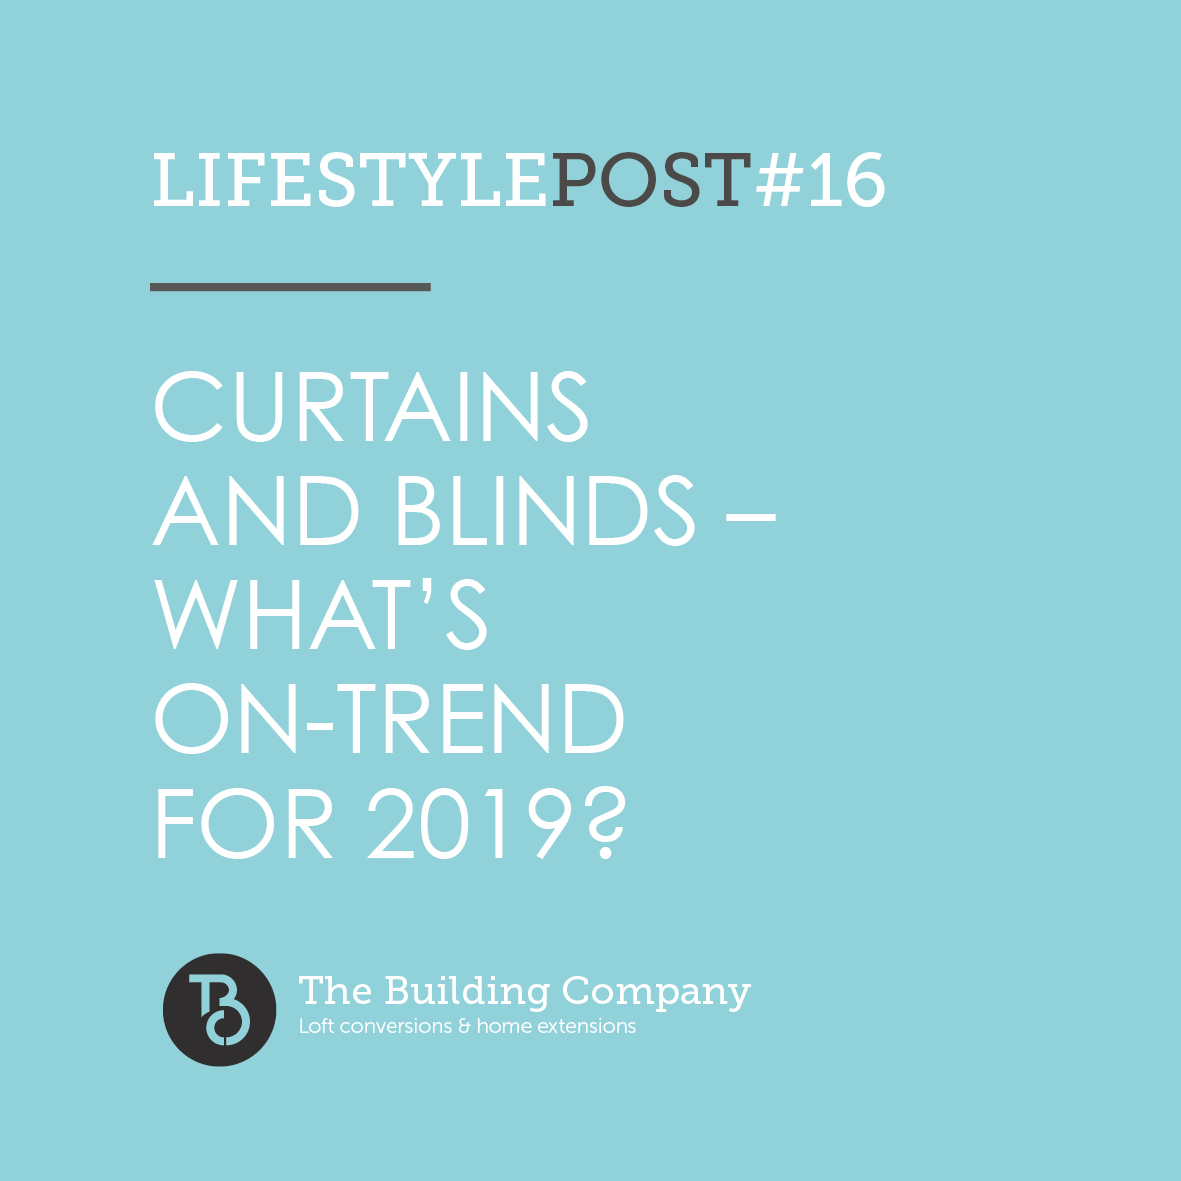 Curtains and blinds – what's on-trend for 2019?